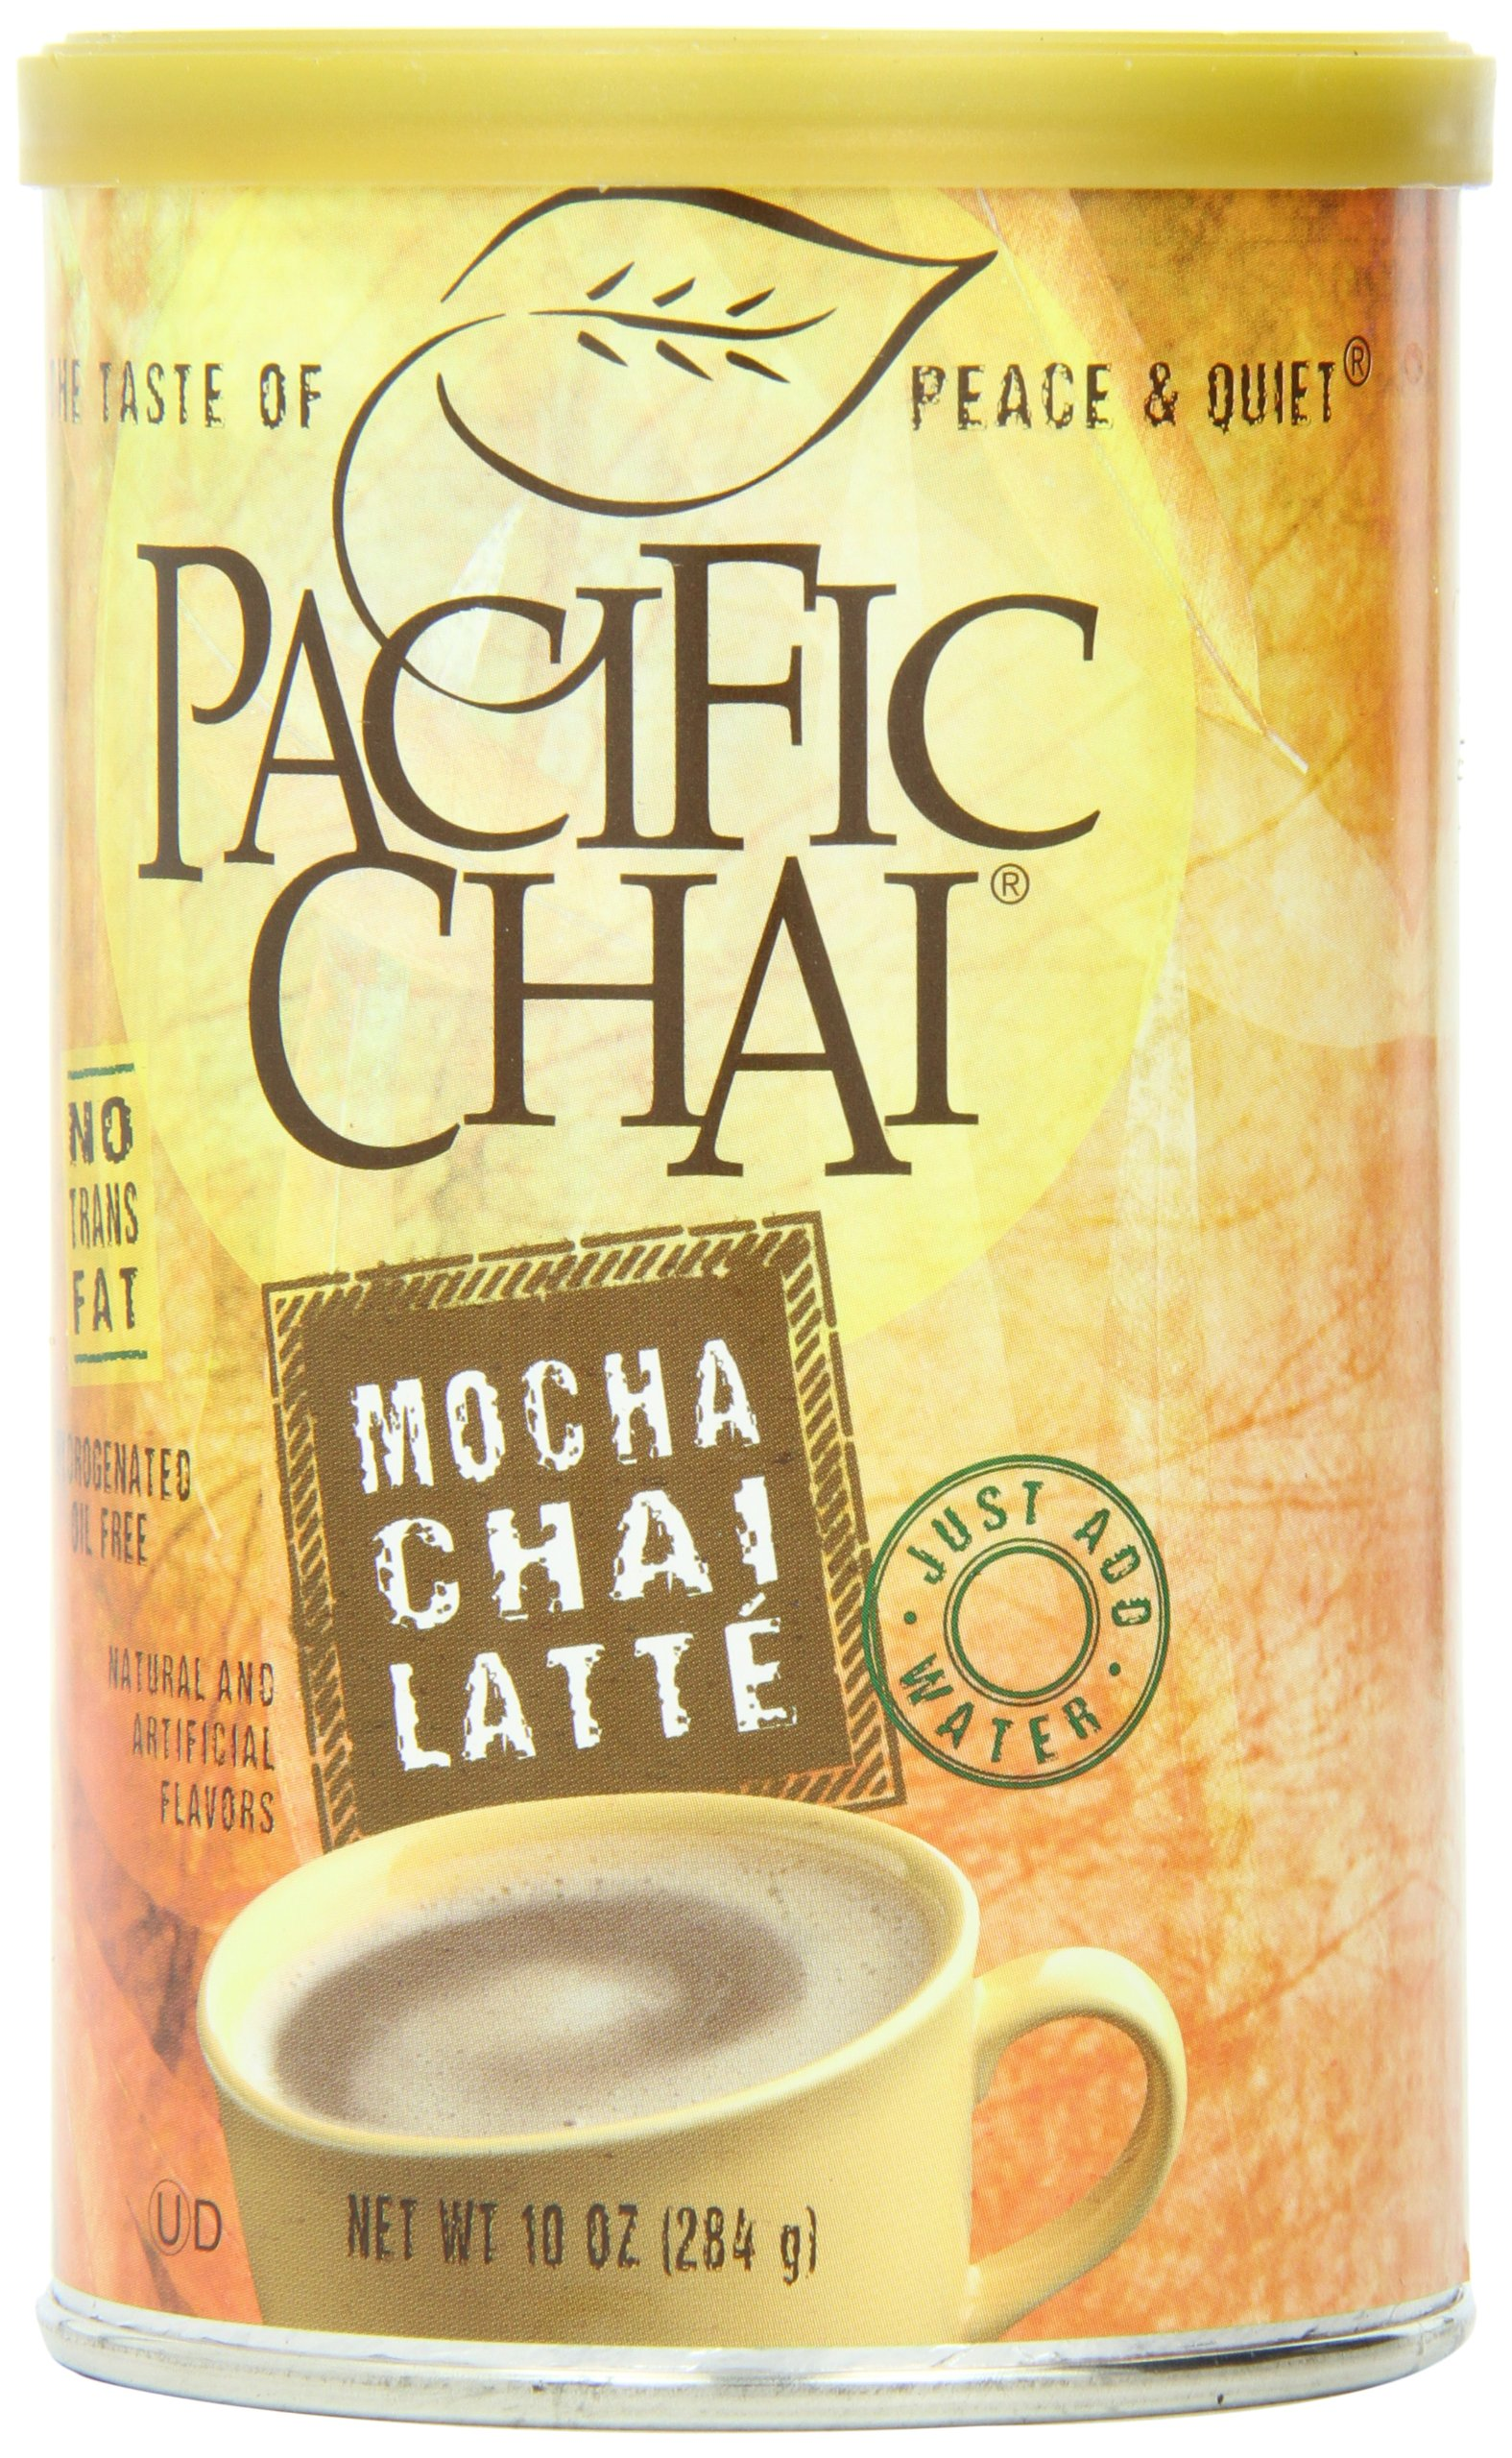 Pacific Chai Mocha Chai Latte  Mix 10-Ounce Canisters (Pack of 6) by Pacific Chai